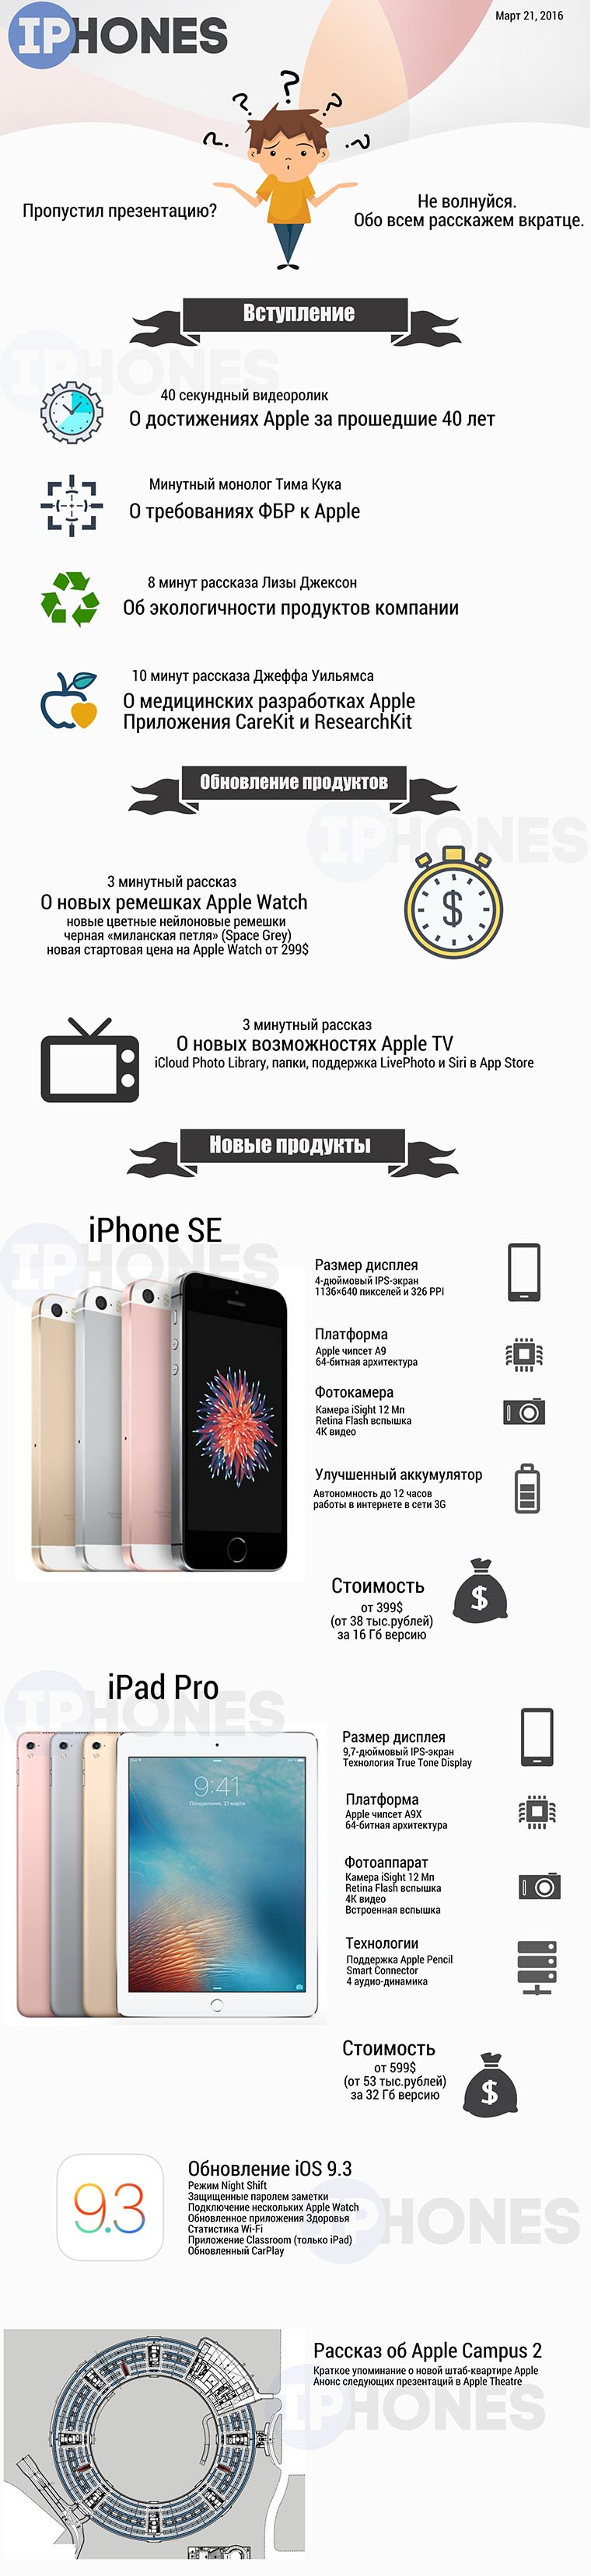 iphones_apple_event_21mart